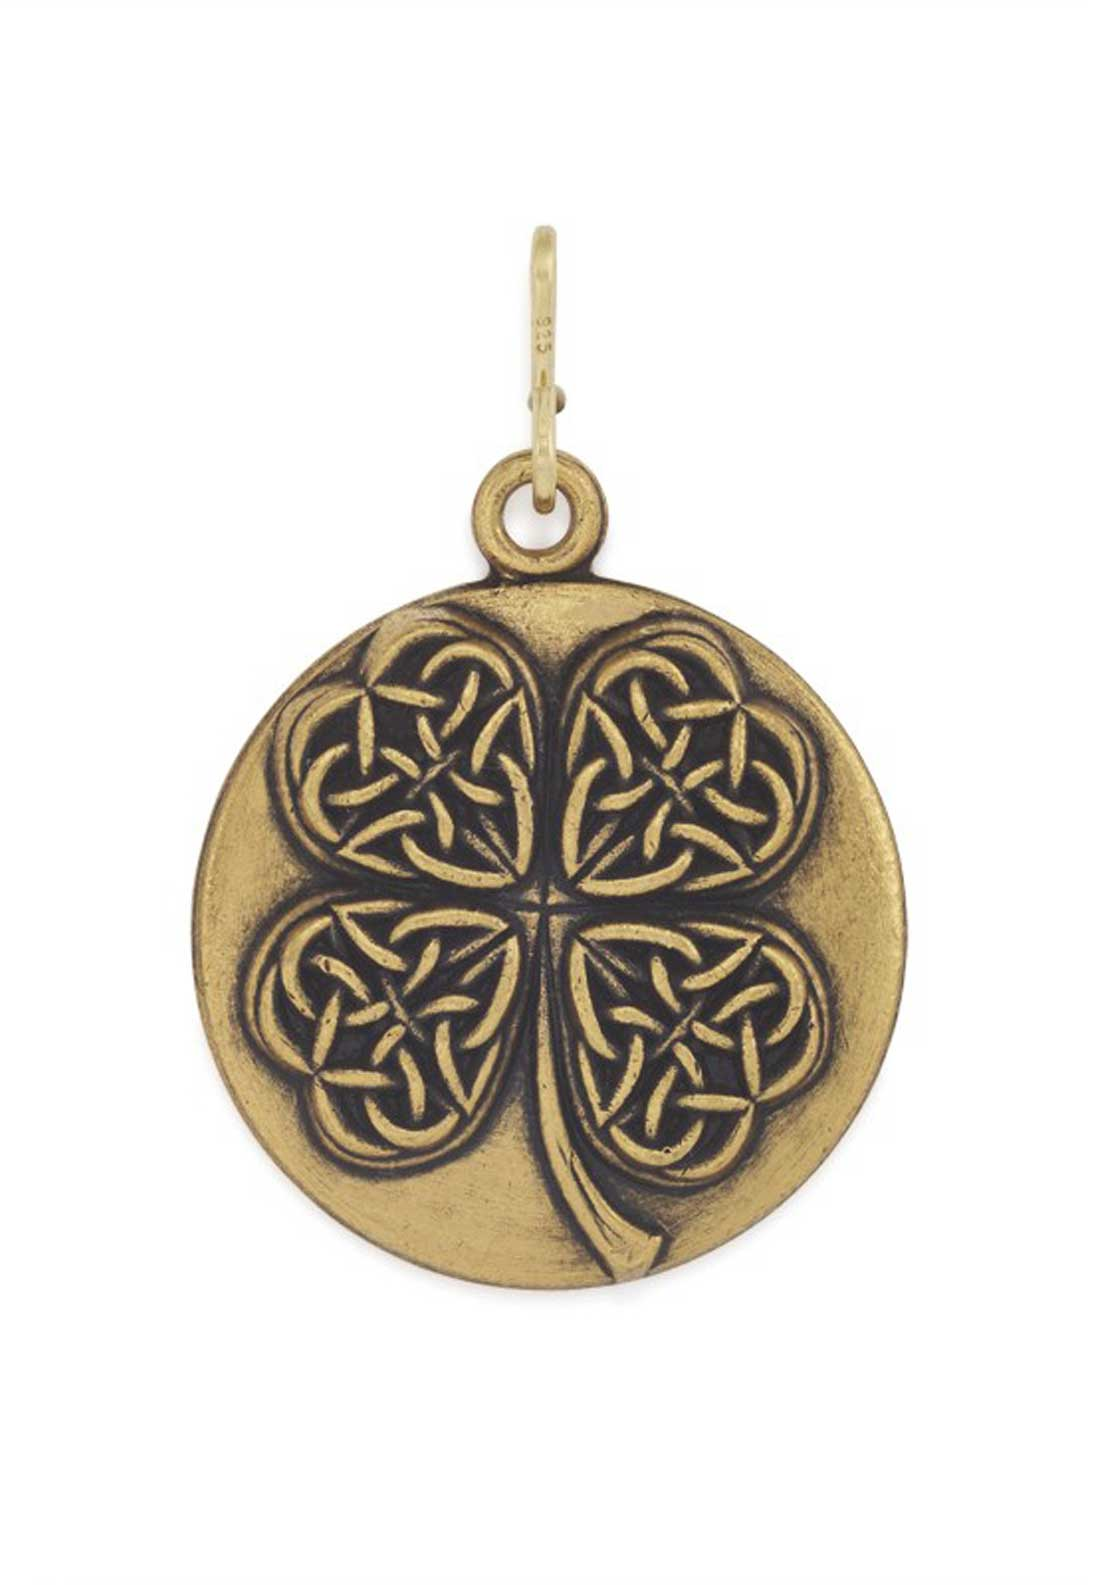 Alex and Ani Chain Station Four Leaf Clover Charm Gold